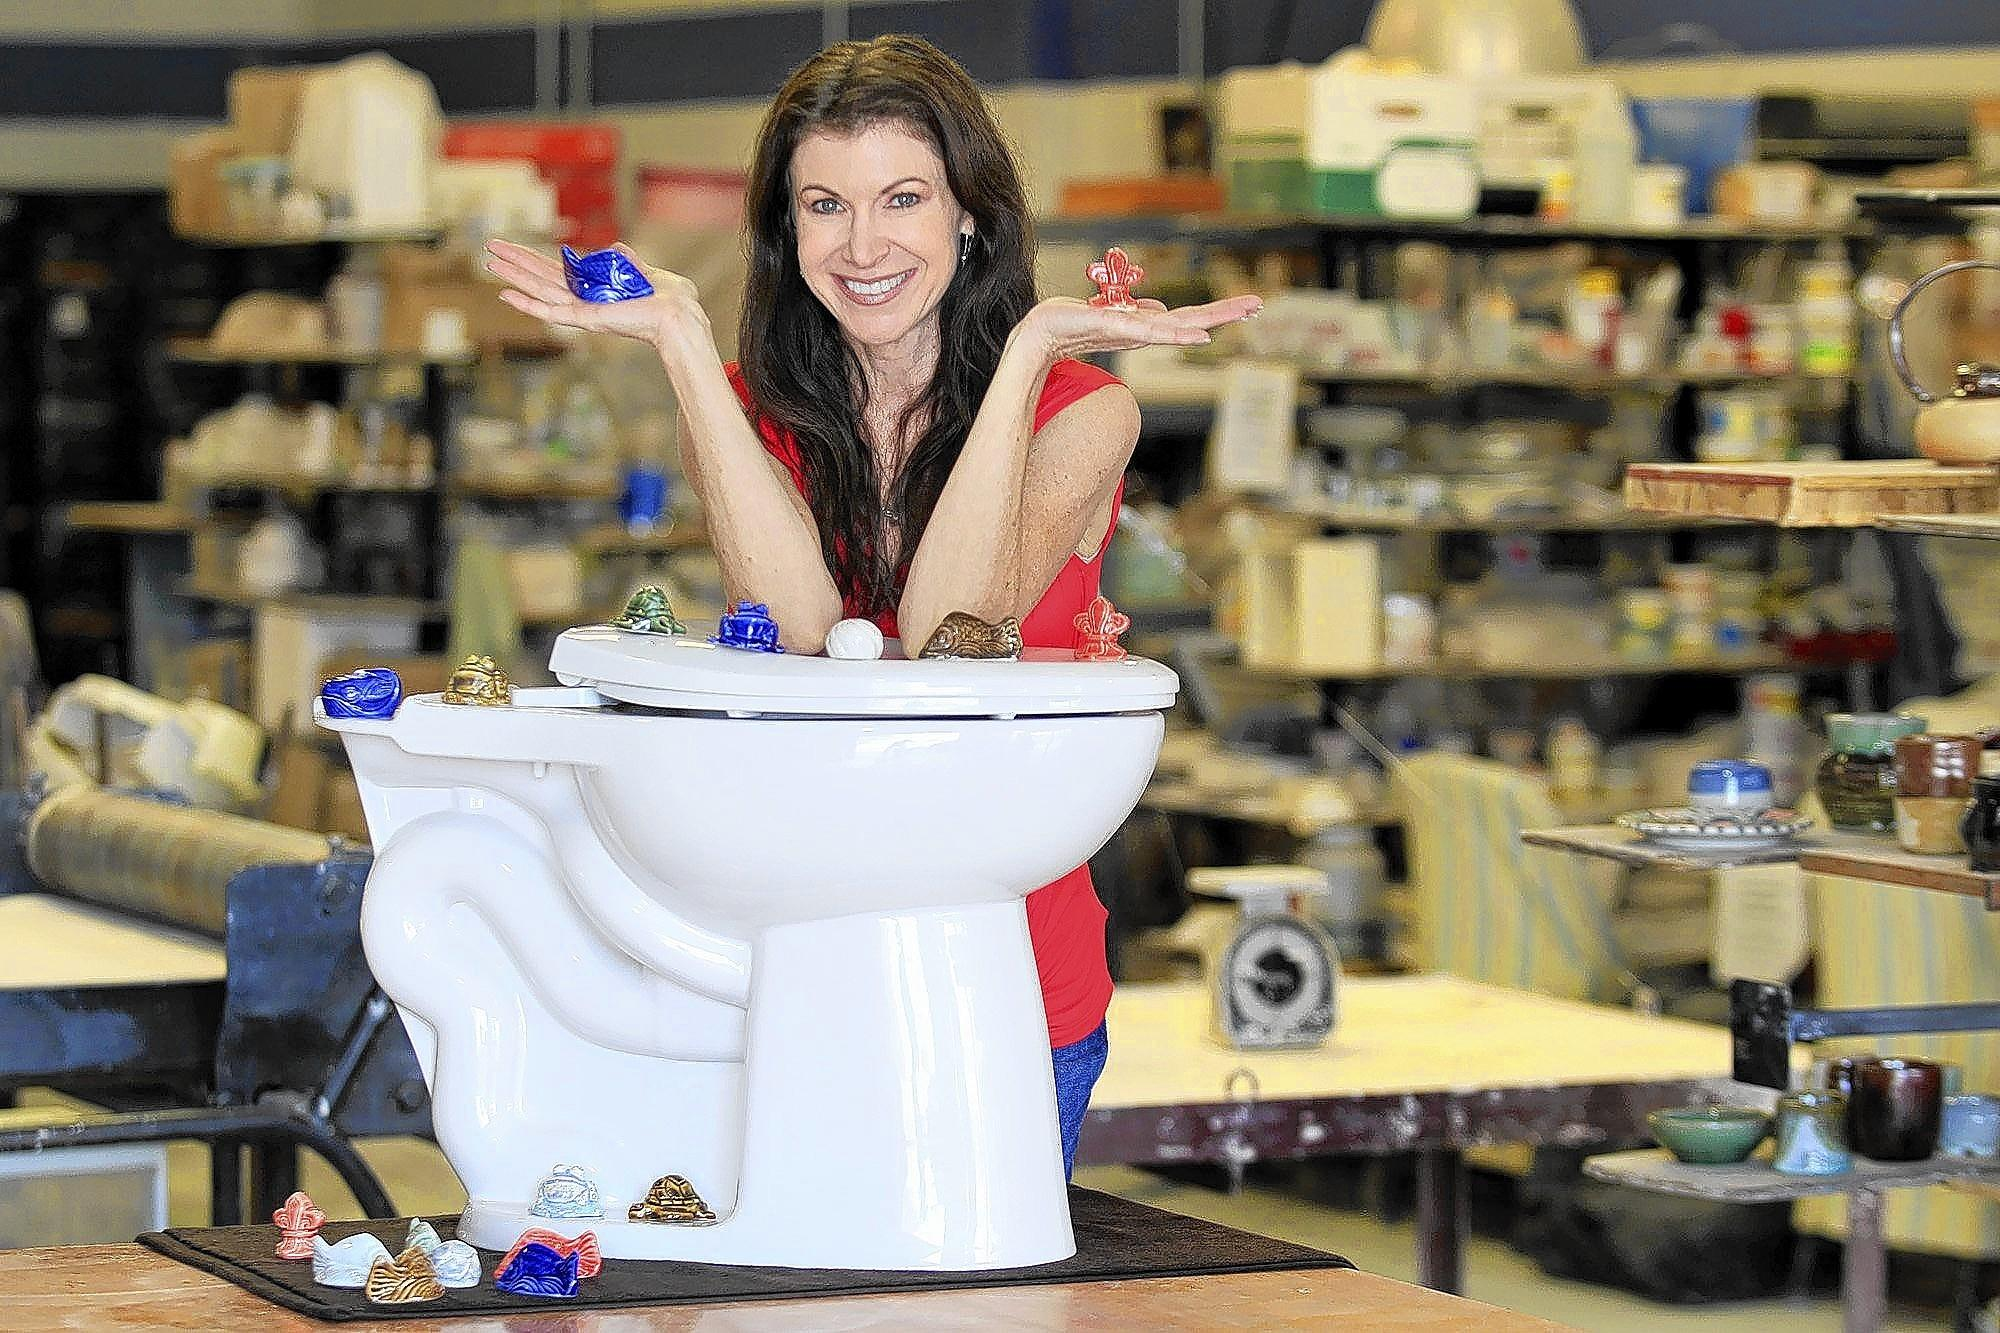 Laguna Niguel artist Stephanie Wirkkala created Jewels for the Loo, a decorative line of ceramic bolt covers for toilets.